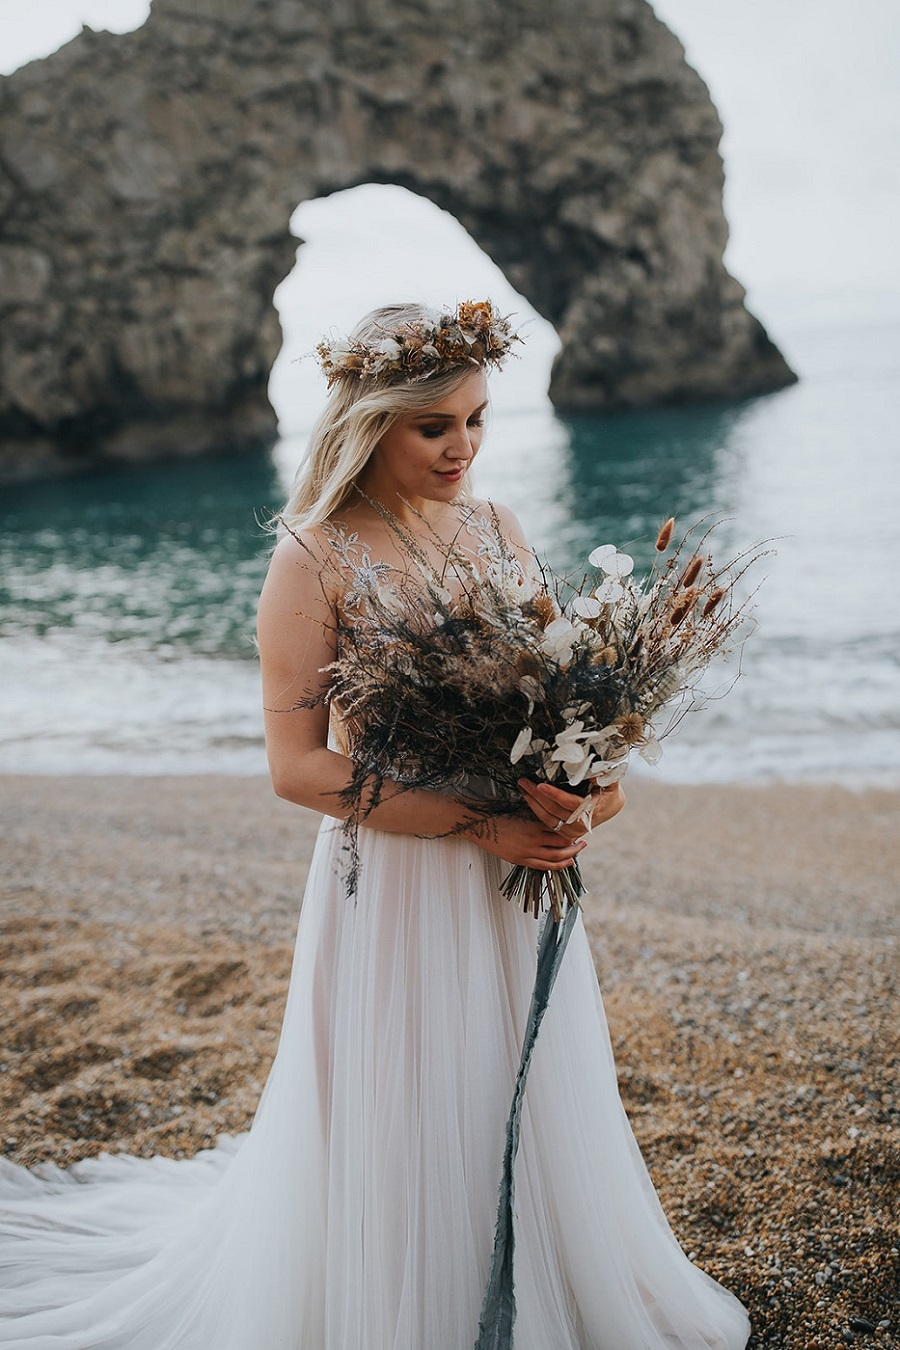 Sunrise elopement shoot! Westlake Photography and the Rustic Dresser (12)